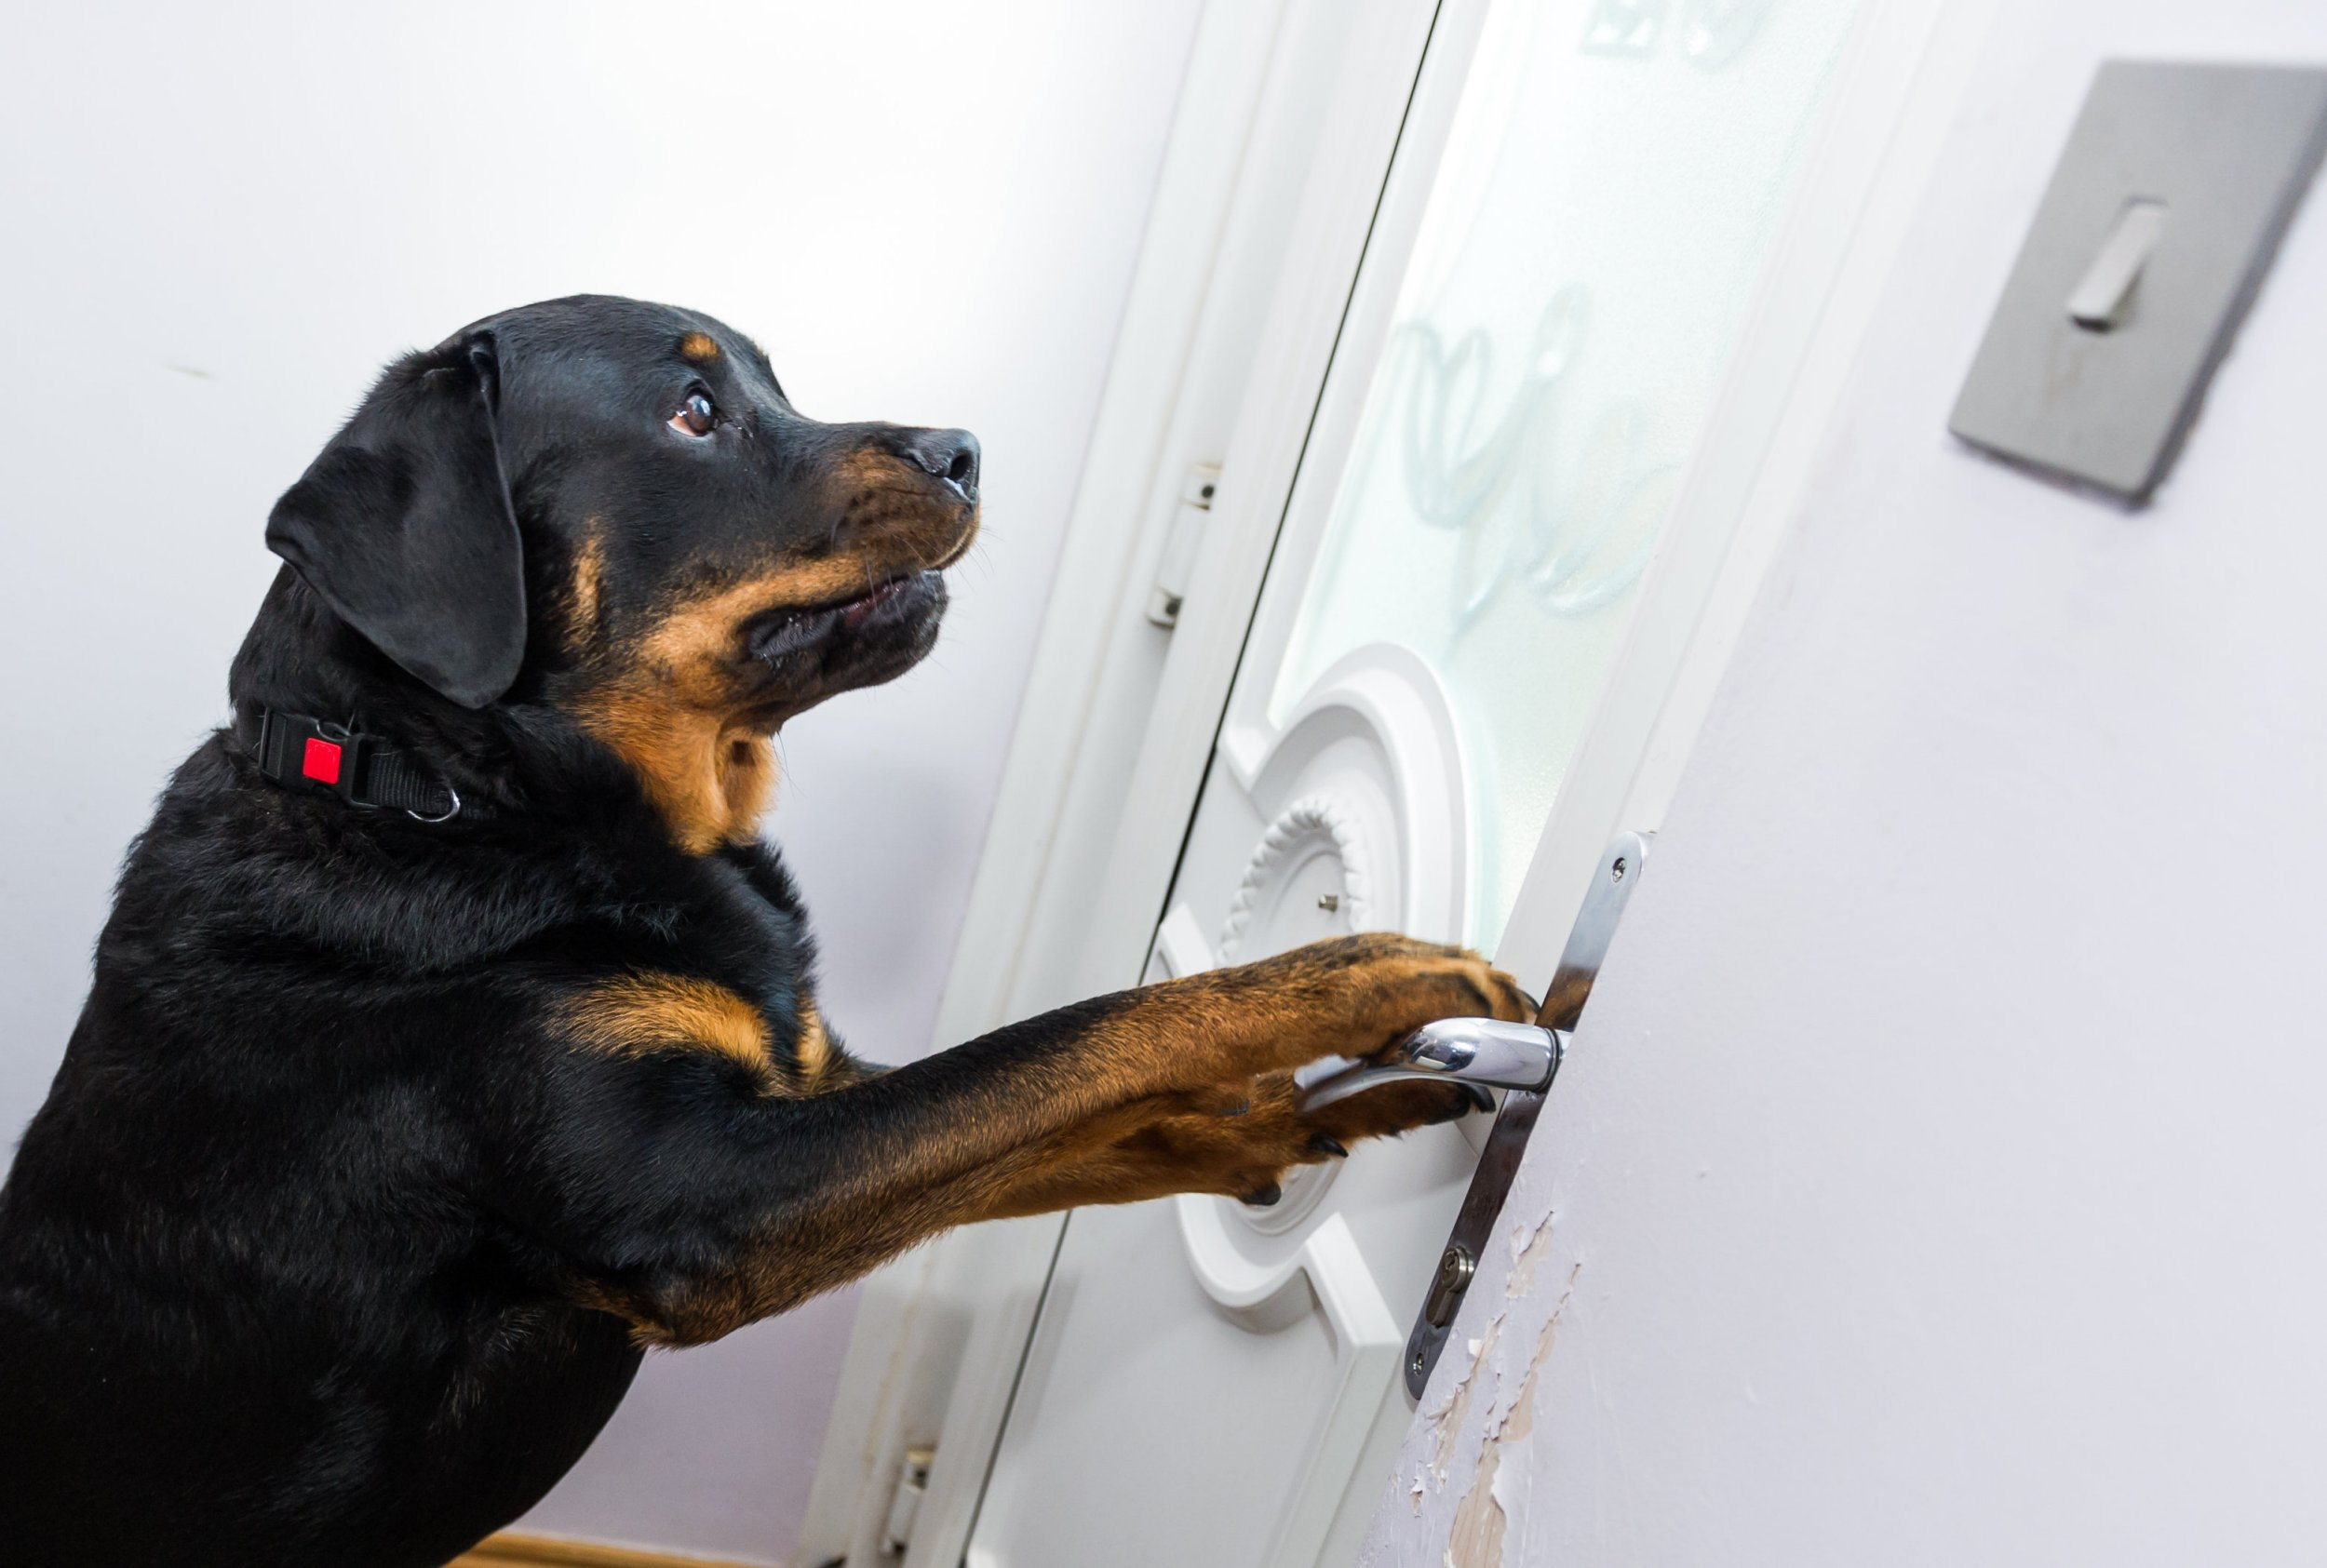 Rottweiler Megan age 3 who saved the life of her owner Gary Gregory age 32 from Lowestoft, Suffolk by opening the house door to let in the paramedics when Gary was collapsed on the floor. See Masons copy MNDOOR: A man's life was saved by his ROTTWEILER who opened the door to paramedics as he lay lifeless on the floor. Gary Gregory, 32, managed to call 999 moments before passing out because of internal bleeding.Despite help arriving within minutes, ambulance staff feared the worst as they were unable to open the front door and get to him.